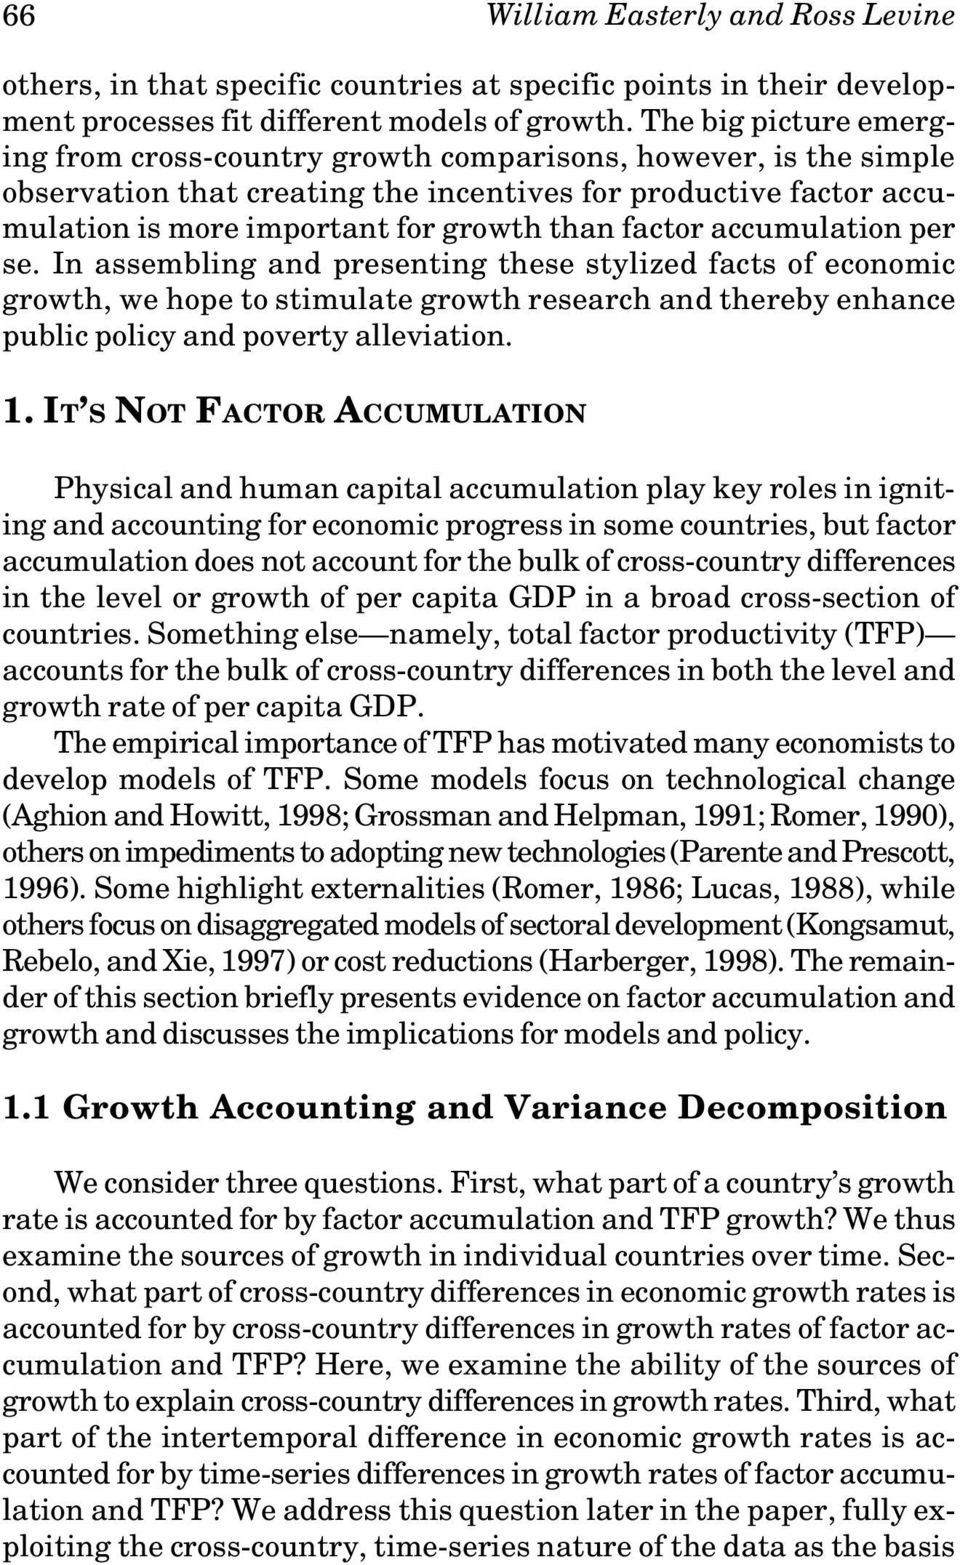 factor accumulation per se. In assembling and presenting these stylized facts of economic growth, we hope to stimulate growth research and thereby enhance public policy and poverty alleviation. 1.